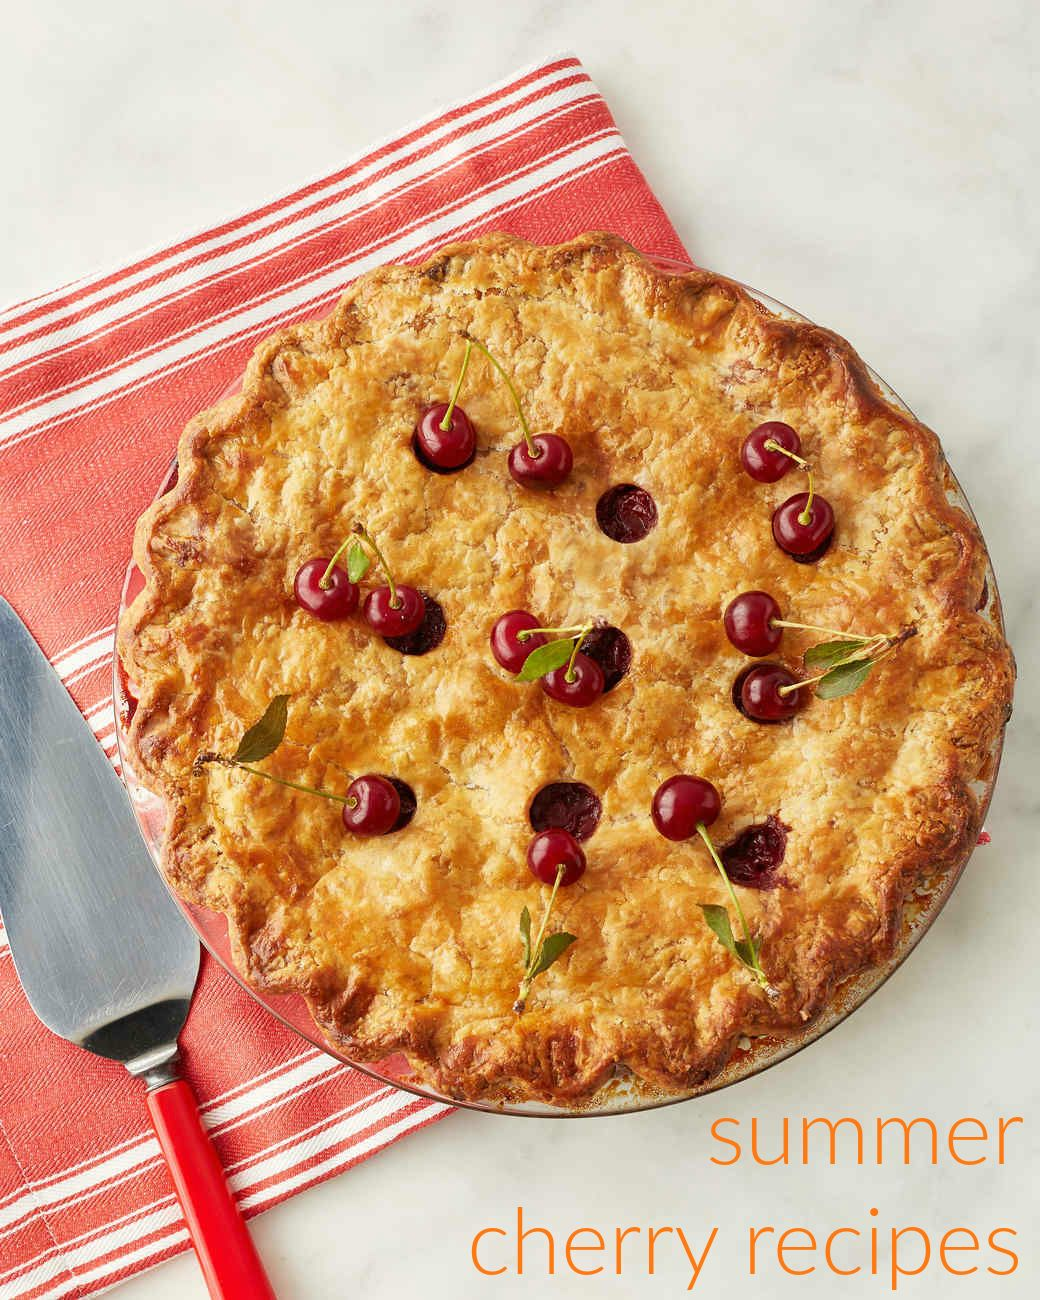 Sour Cherry Recipes Sure to Make Your Summer Sweeter ...